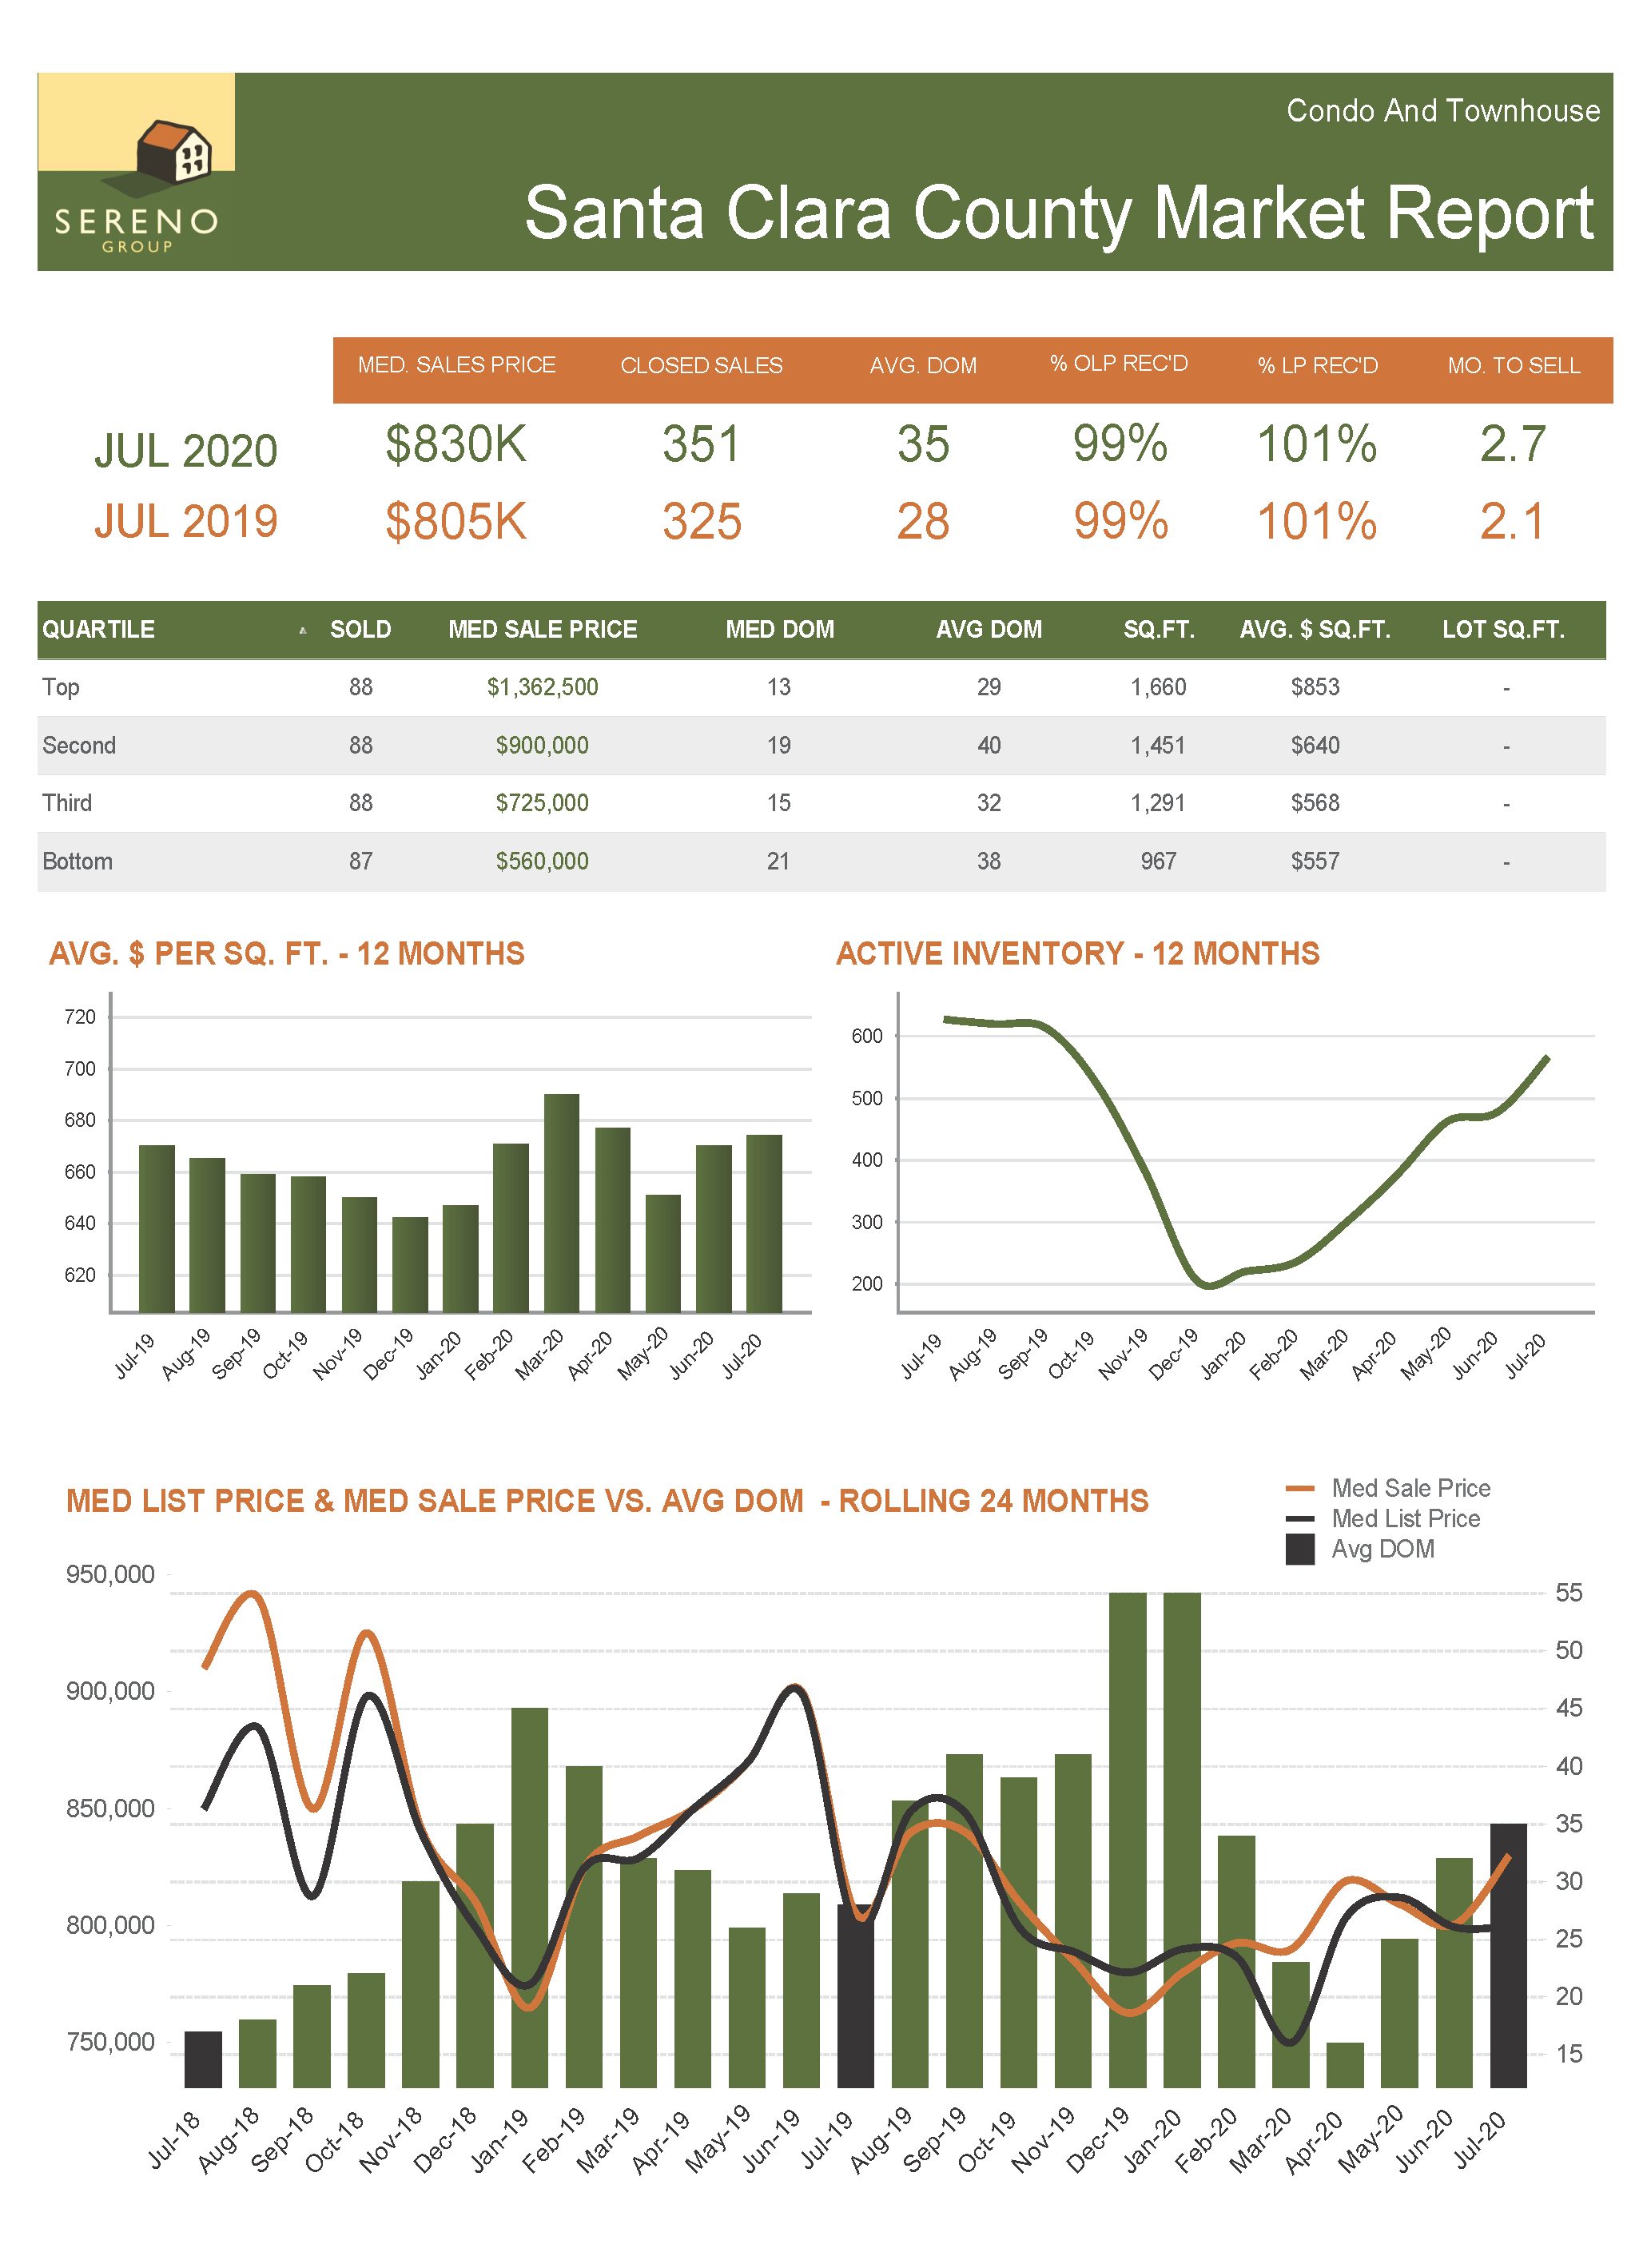 Santa Clara County C_TH Market Report - Jul 2020